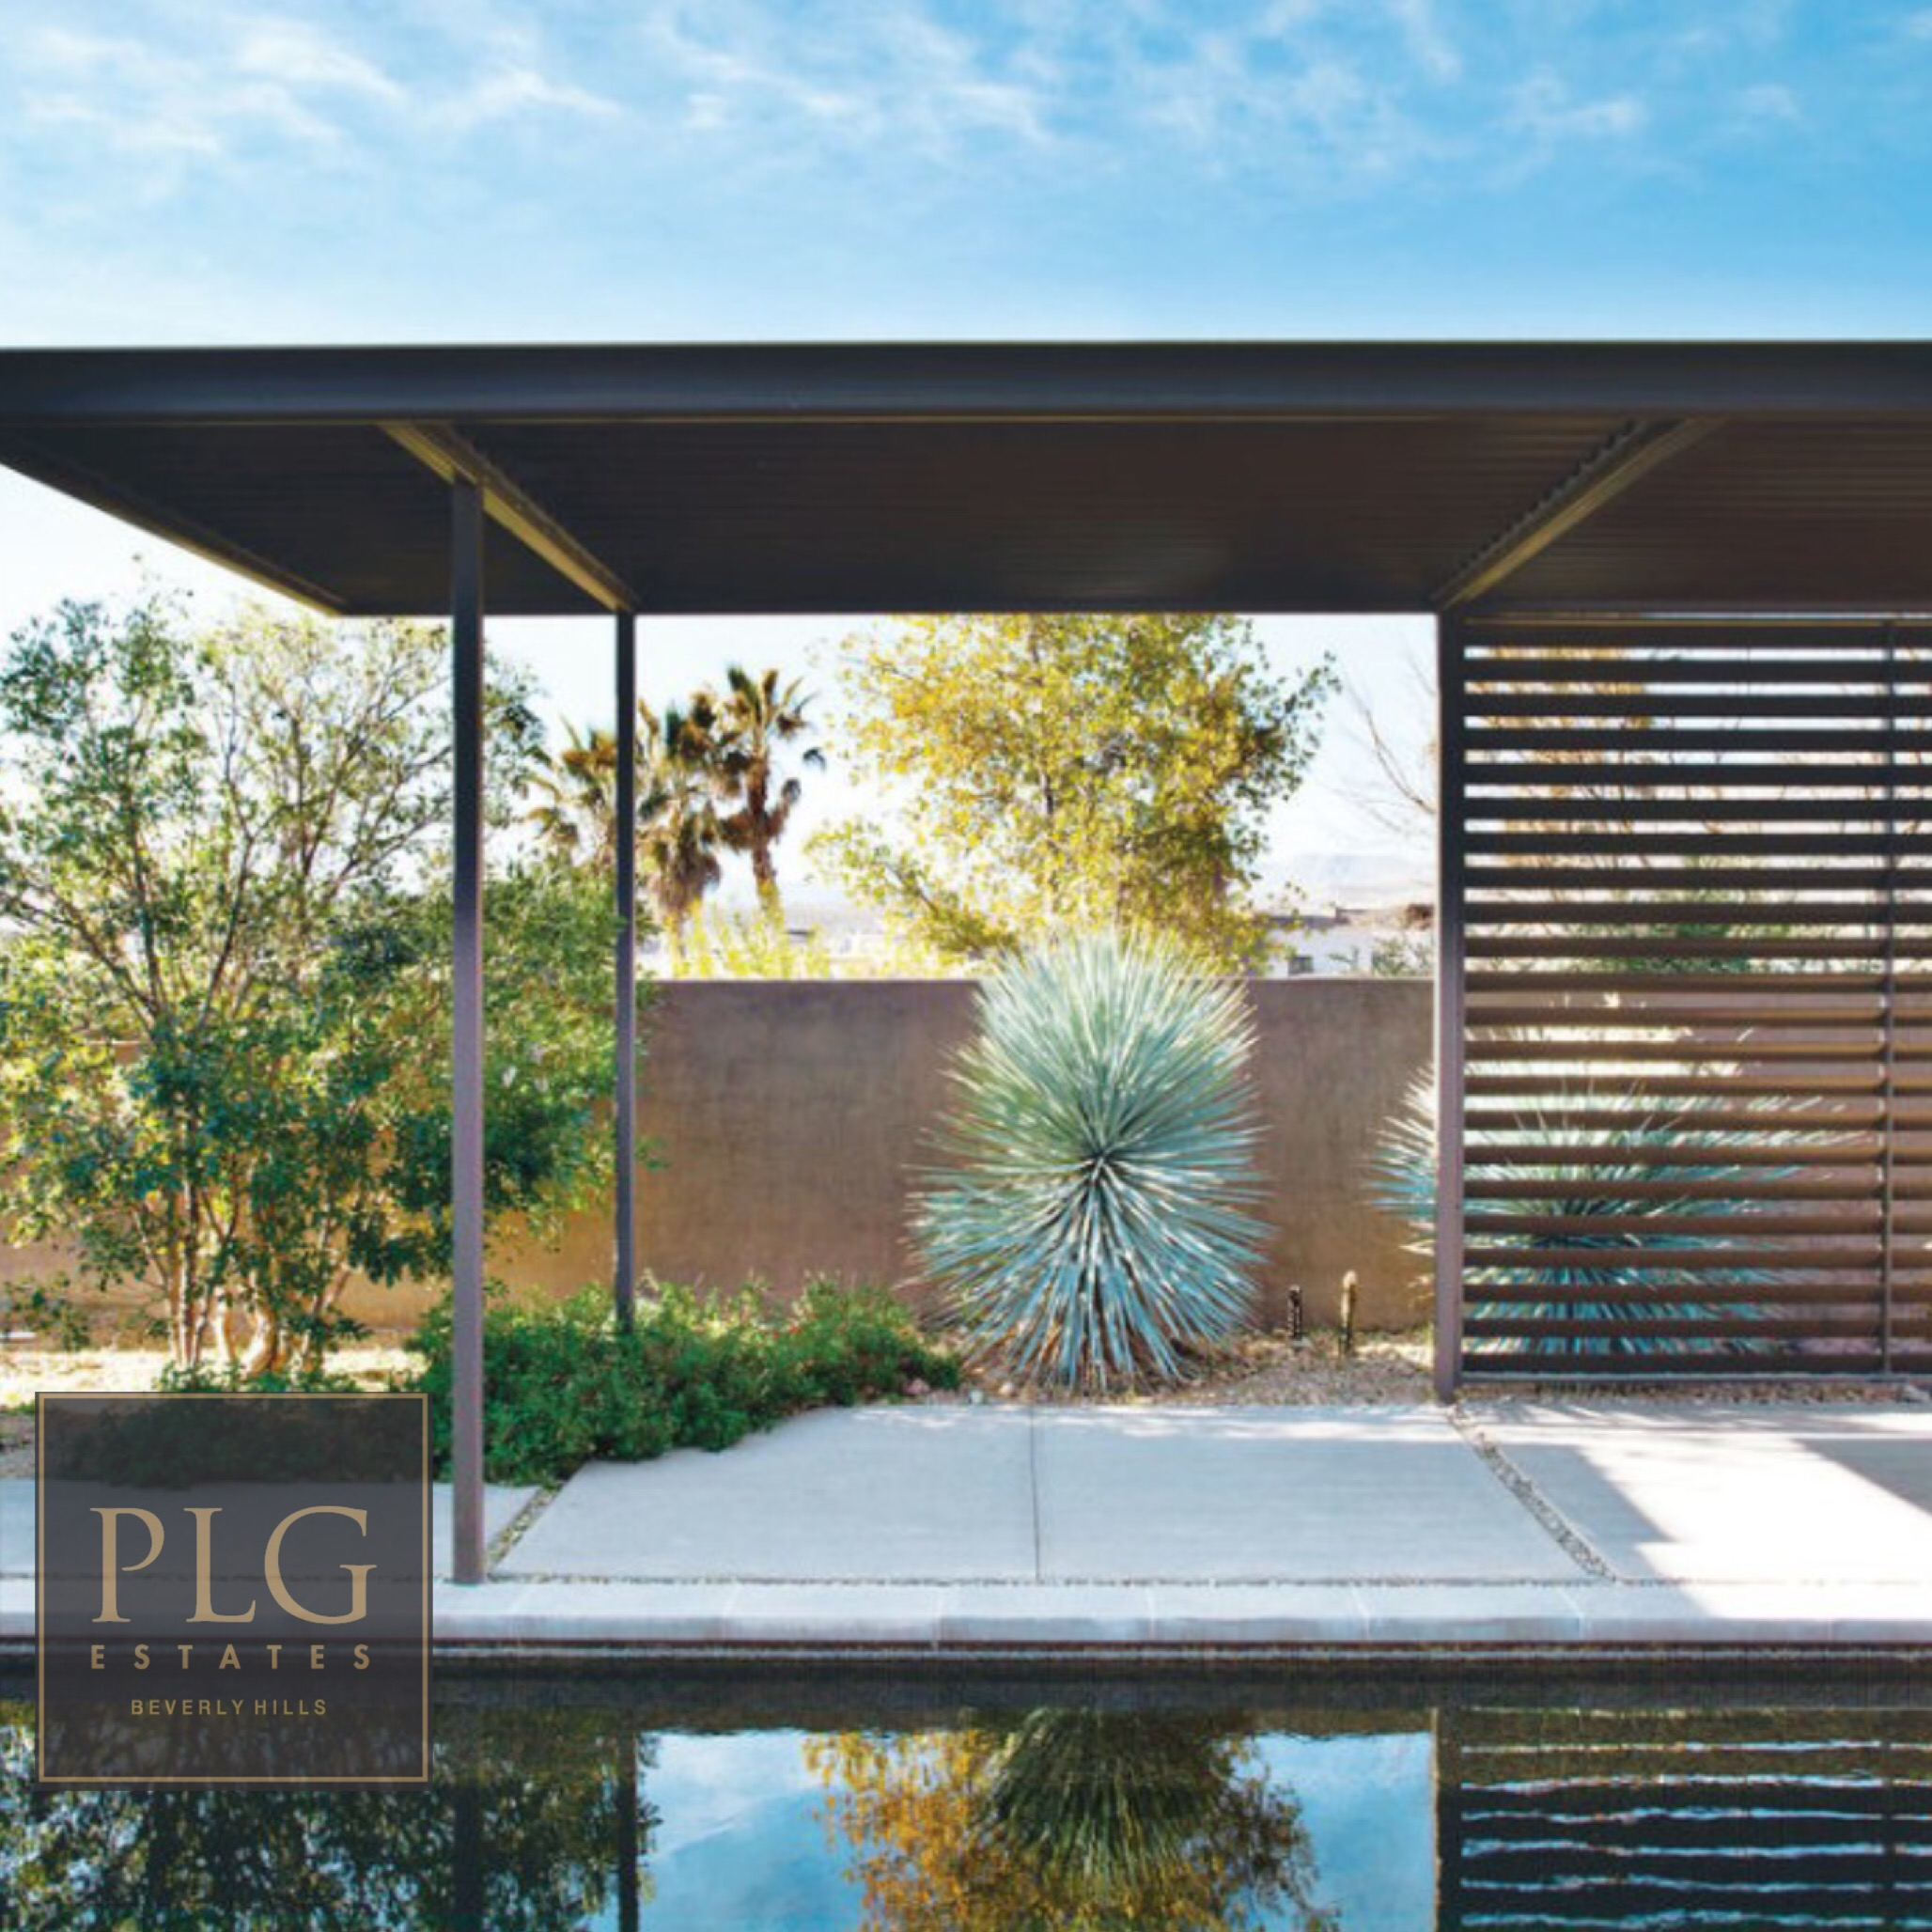 Design | PLG Estates Journal on